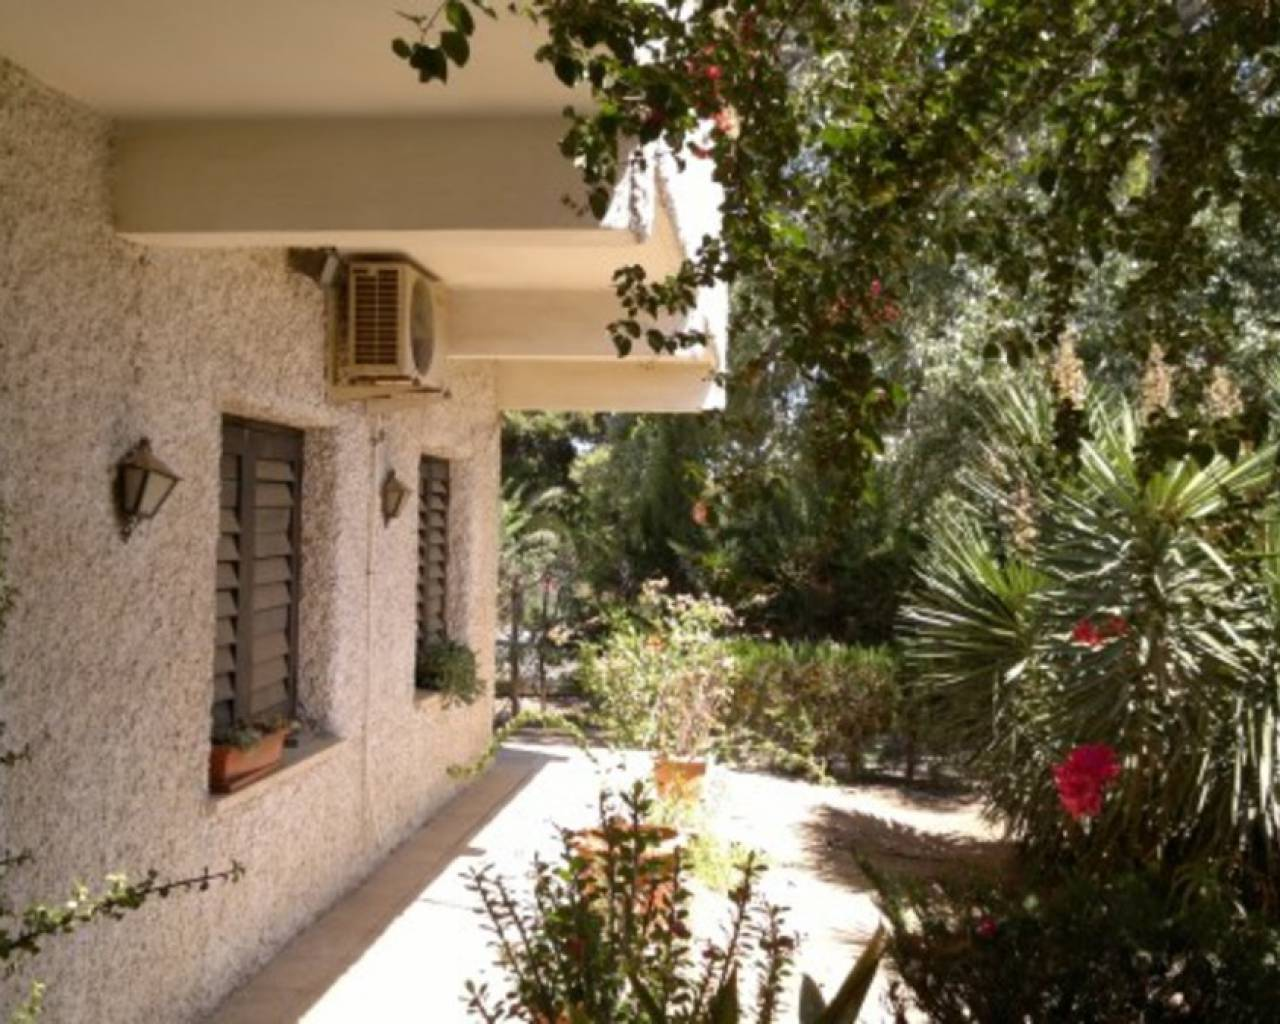 Resale - Detached Villa - Cartagena - Cartagena Murcia